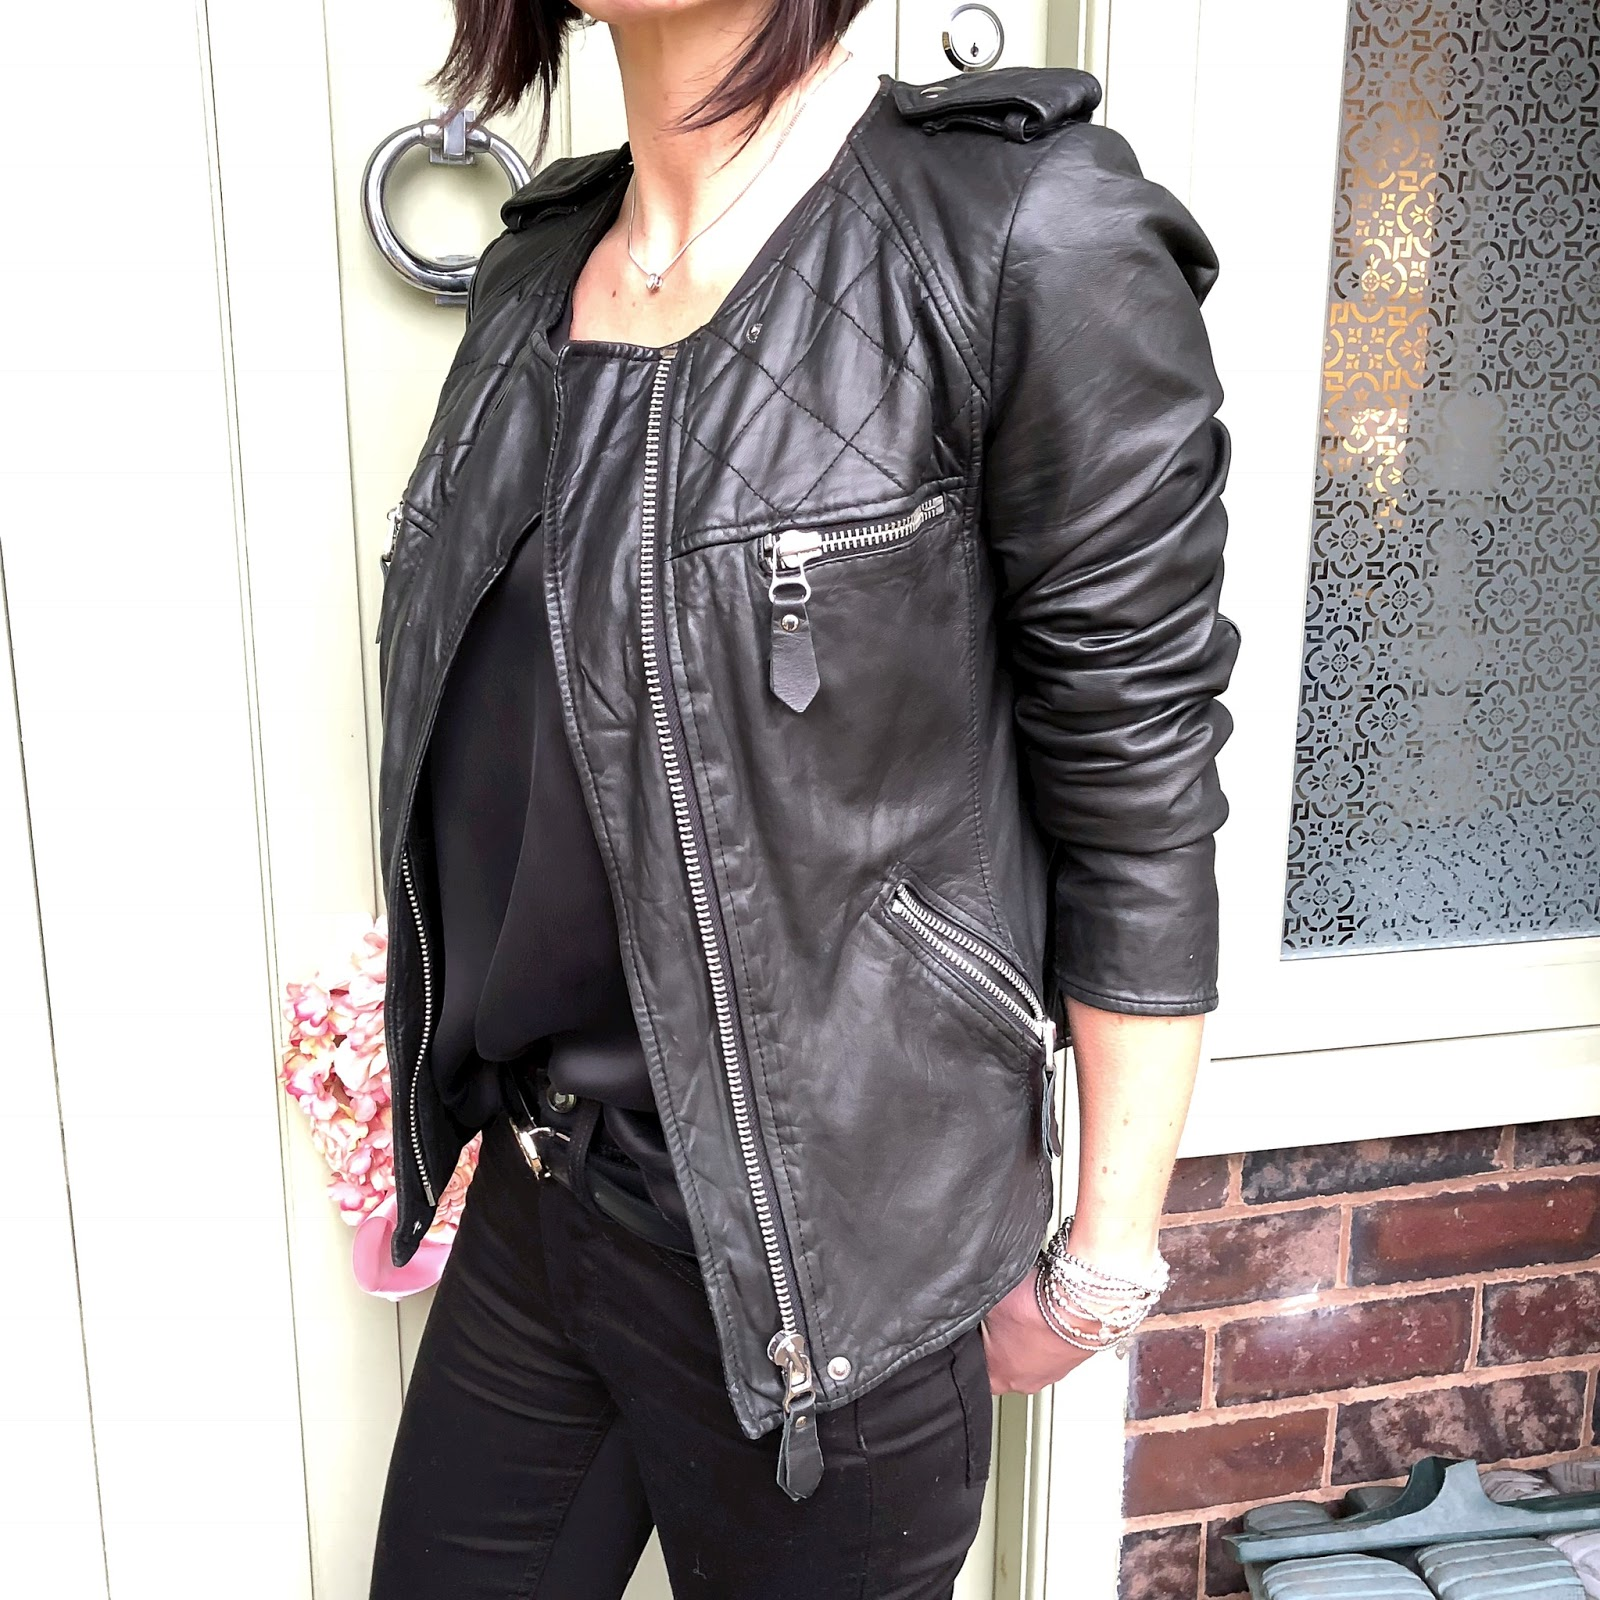 my midlife fashion, the women's society boutique, elia b tucan loafers, isabel marant leather biker jacket, marks and spencer silk top, gucci 2cm leather belt, j crew billie demi crop flare jeans